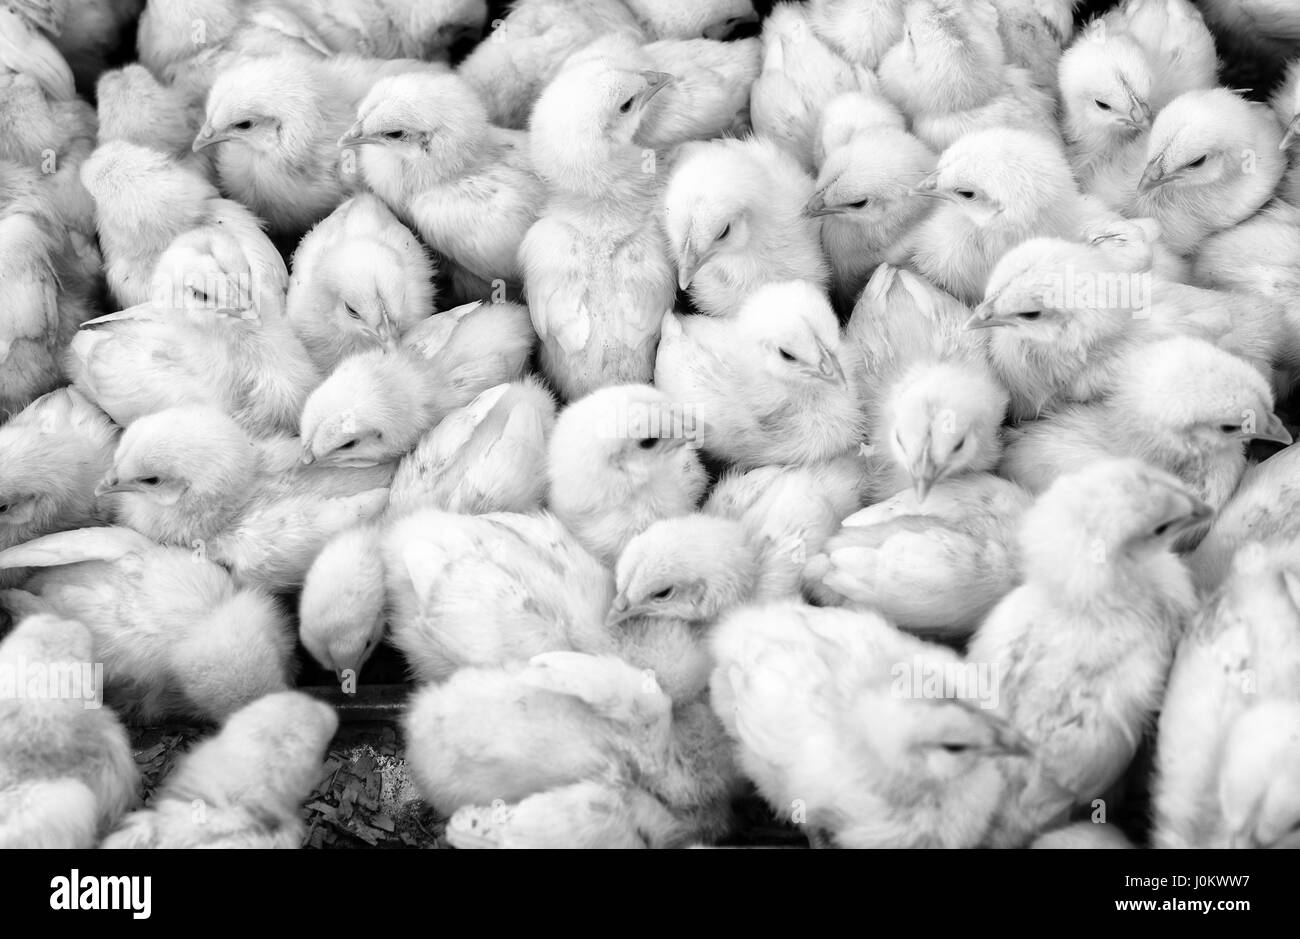 Large group of newly hatched chicks on a chicken farm, black and white. - Stock Image